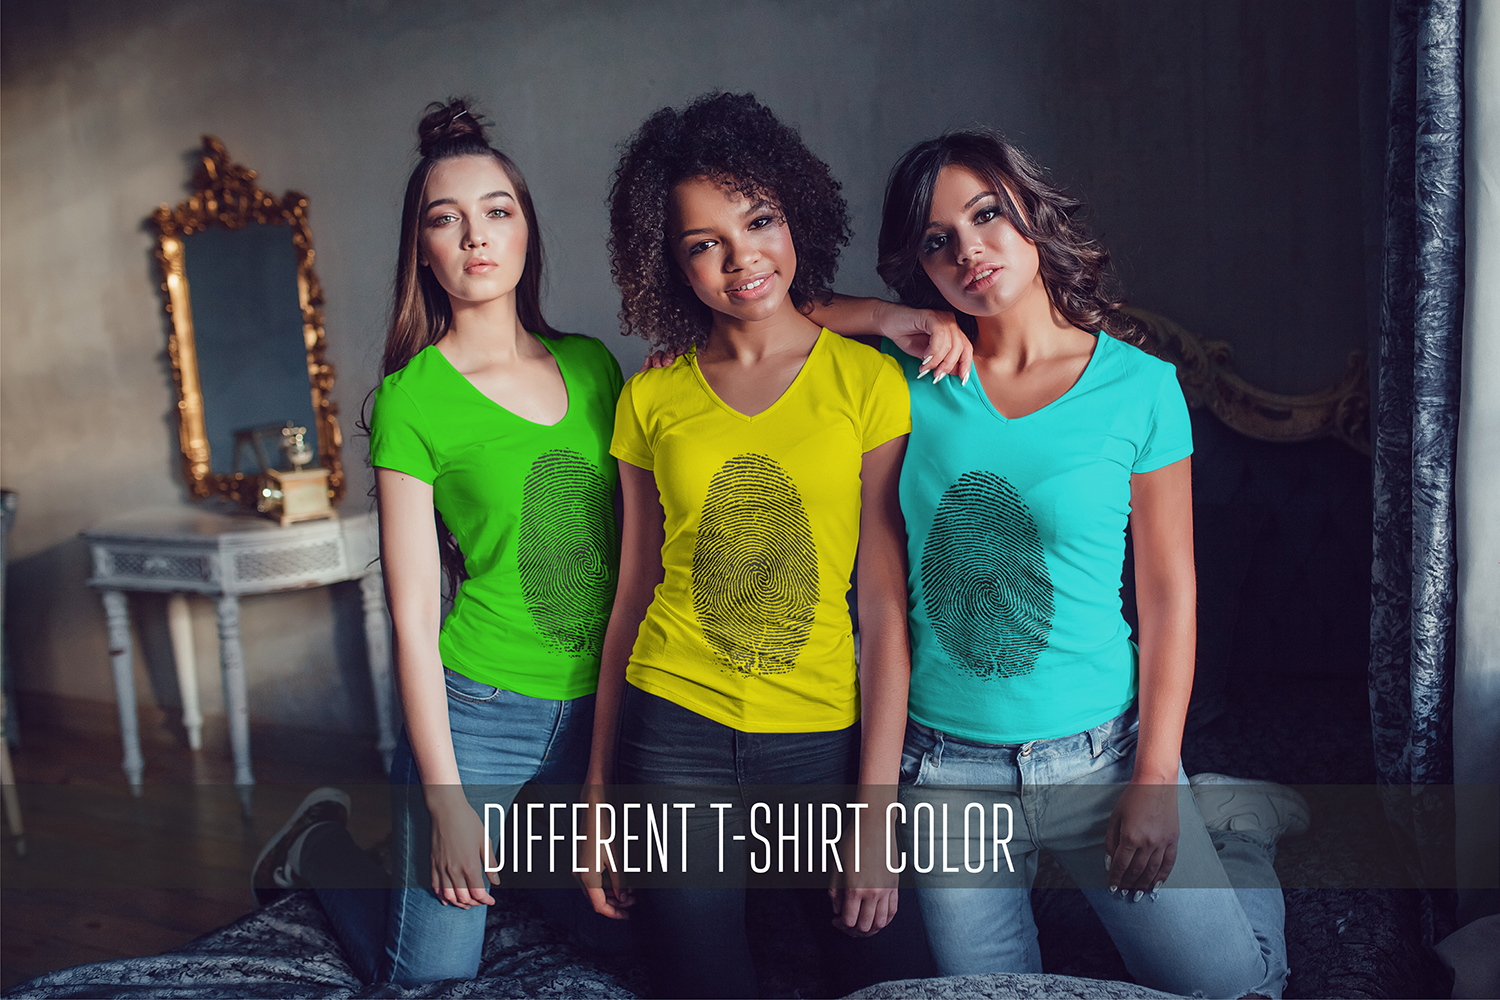 Women's T-Shirts Mock-Up Vol.1 2017 example image 11